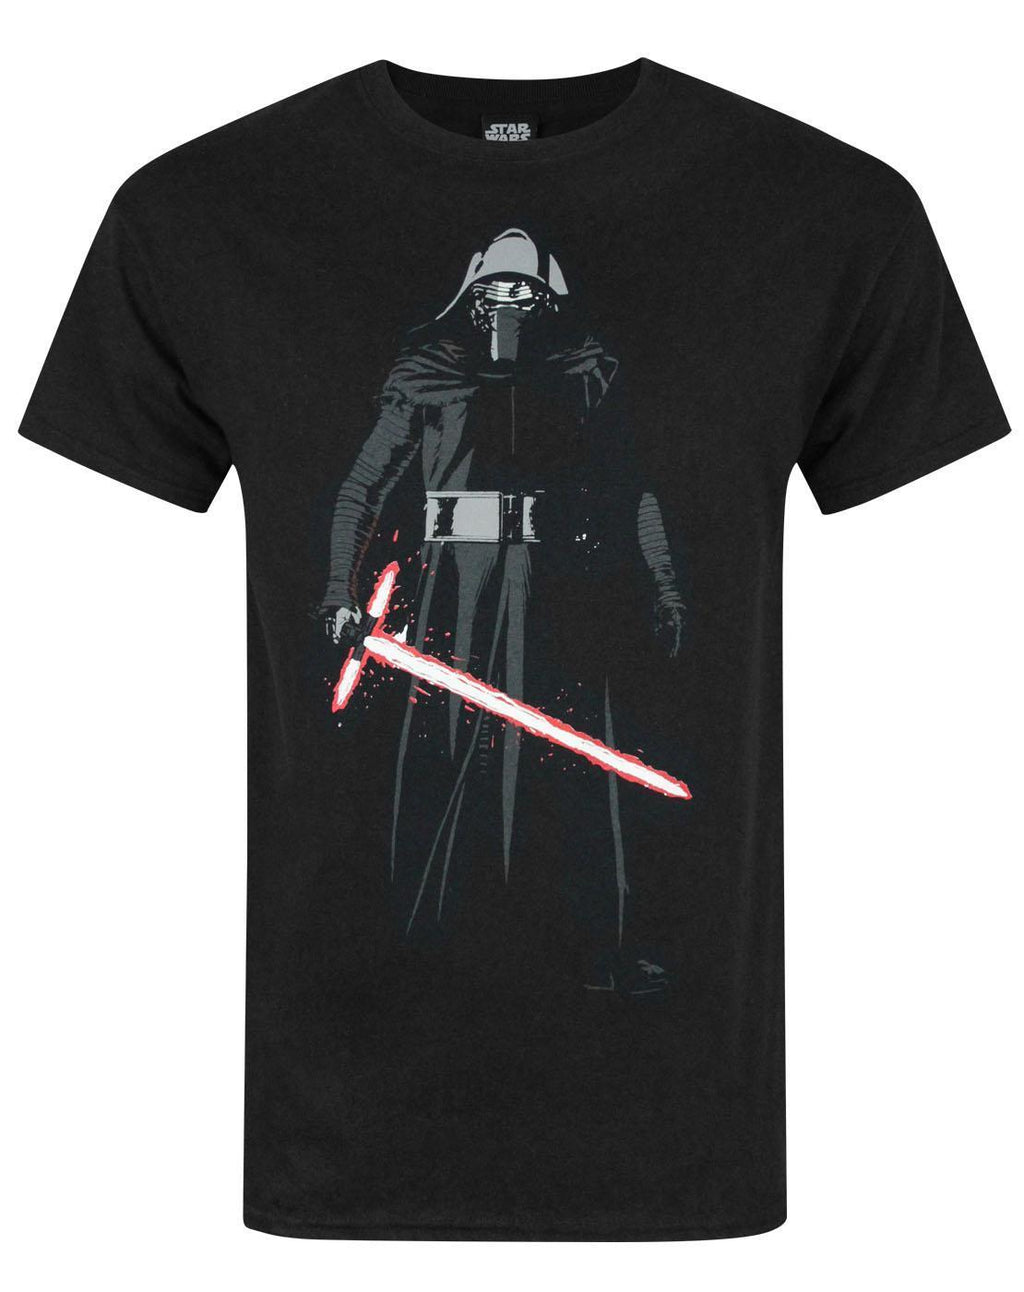 Official Star Wars The Force Awakens Kylo Ren Men's T-Shirt